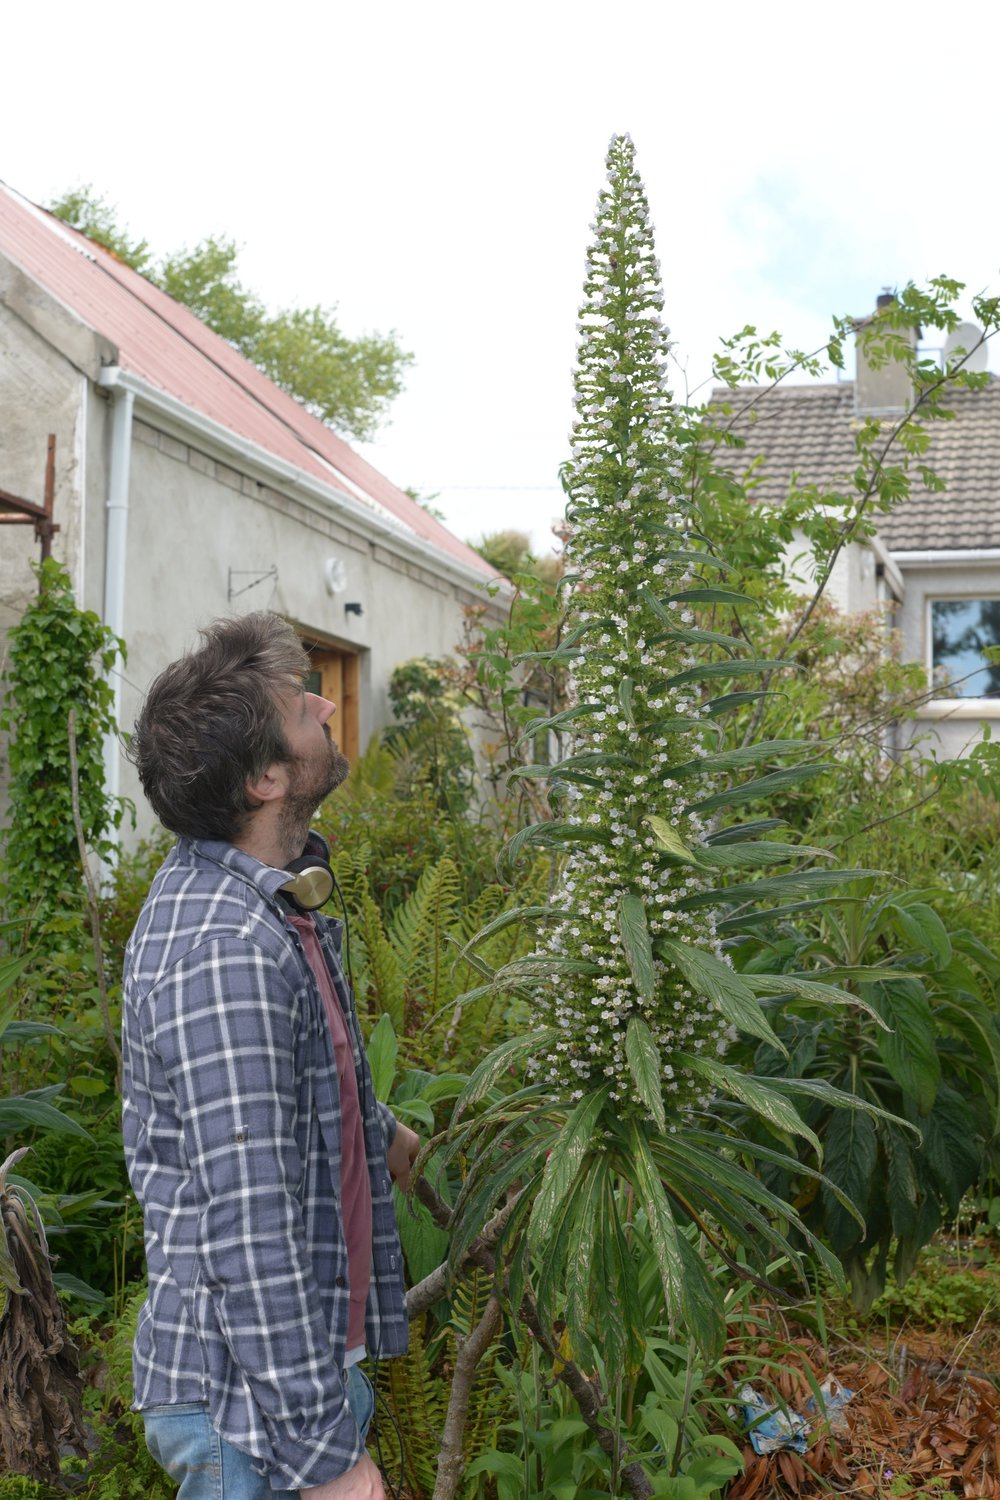 Echium pininana in its second year.